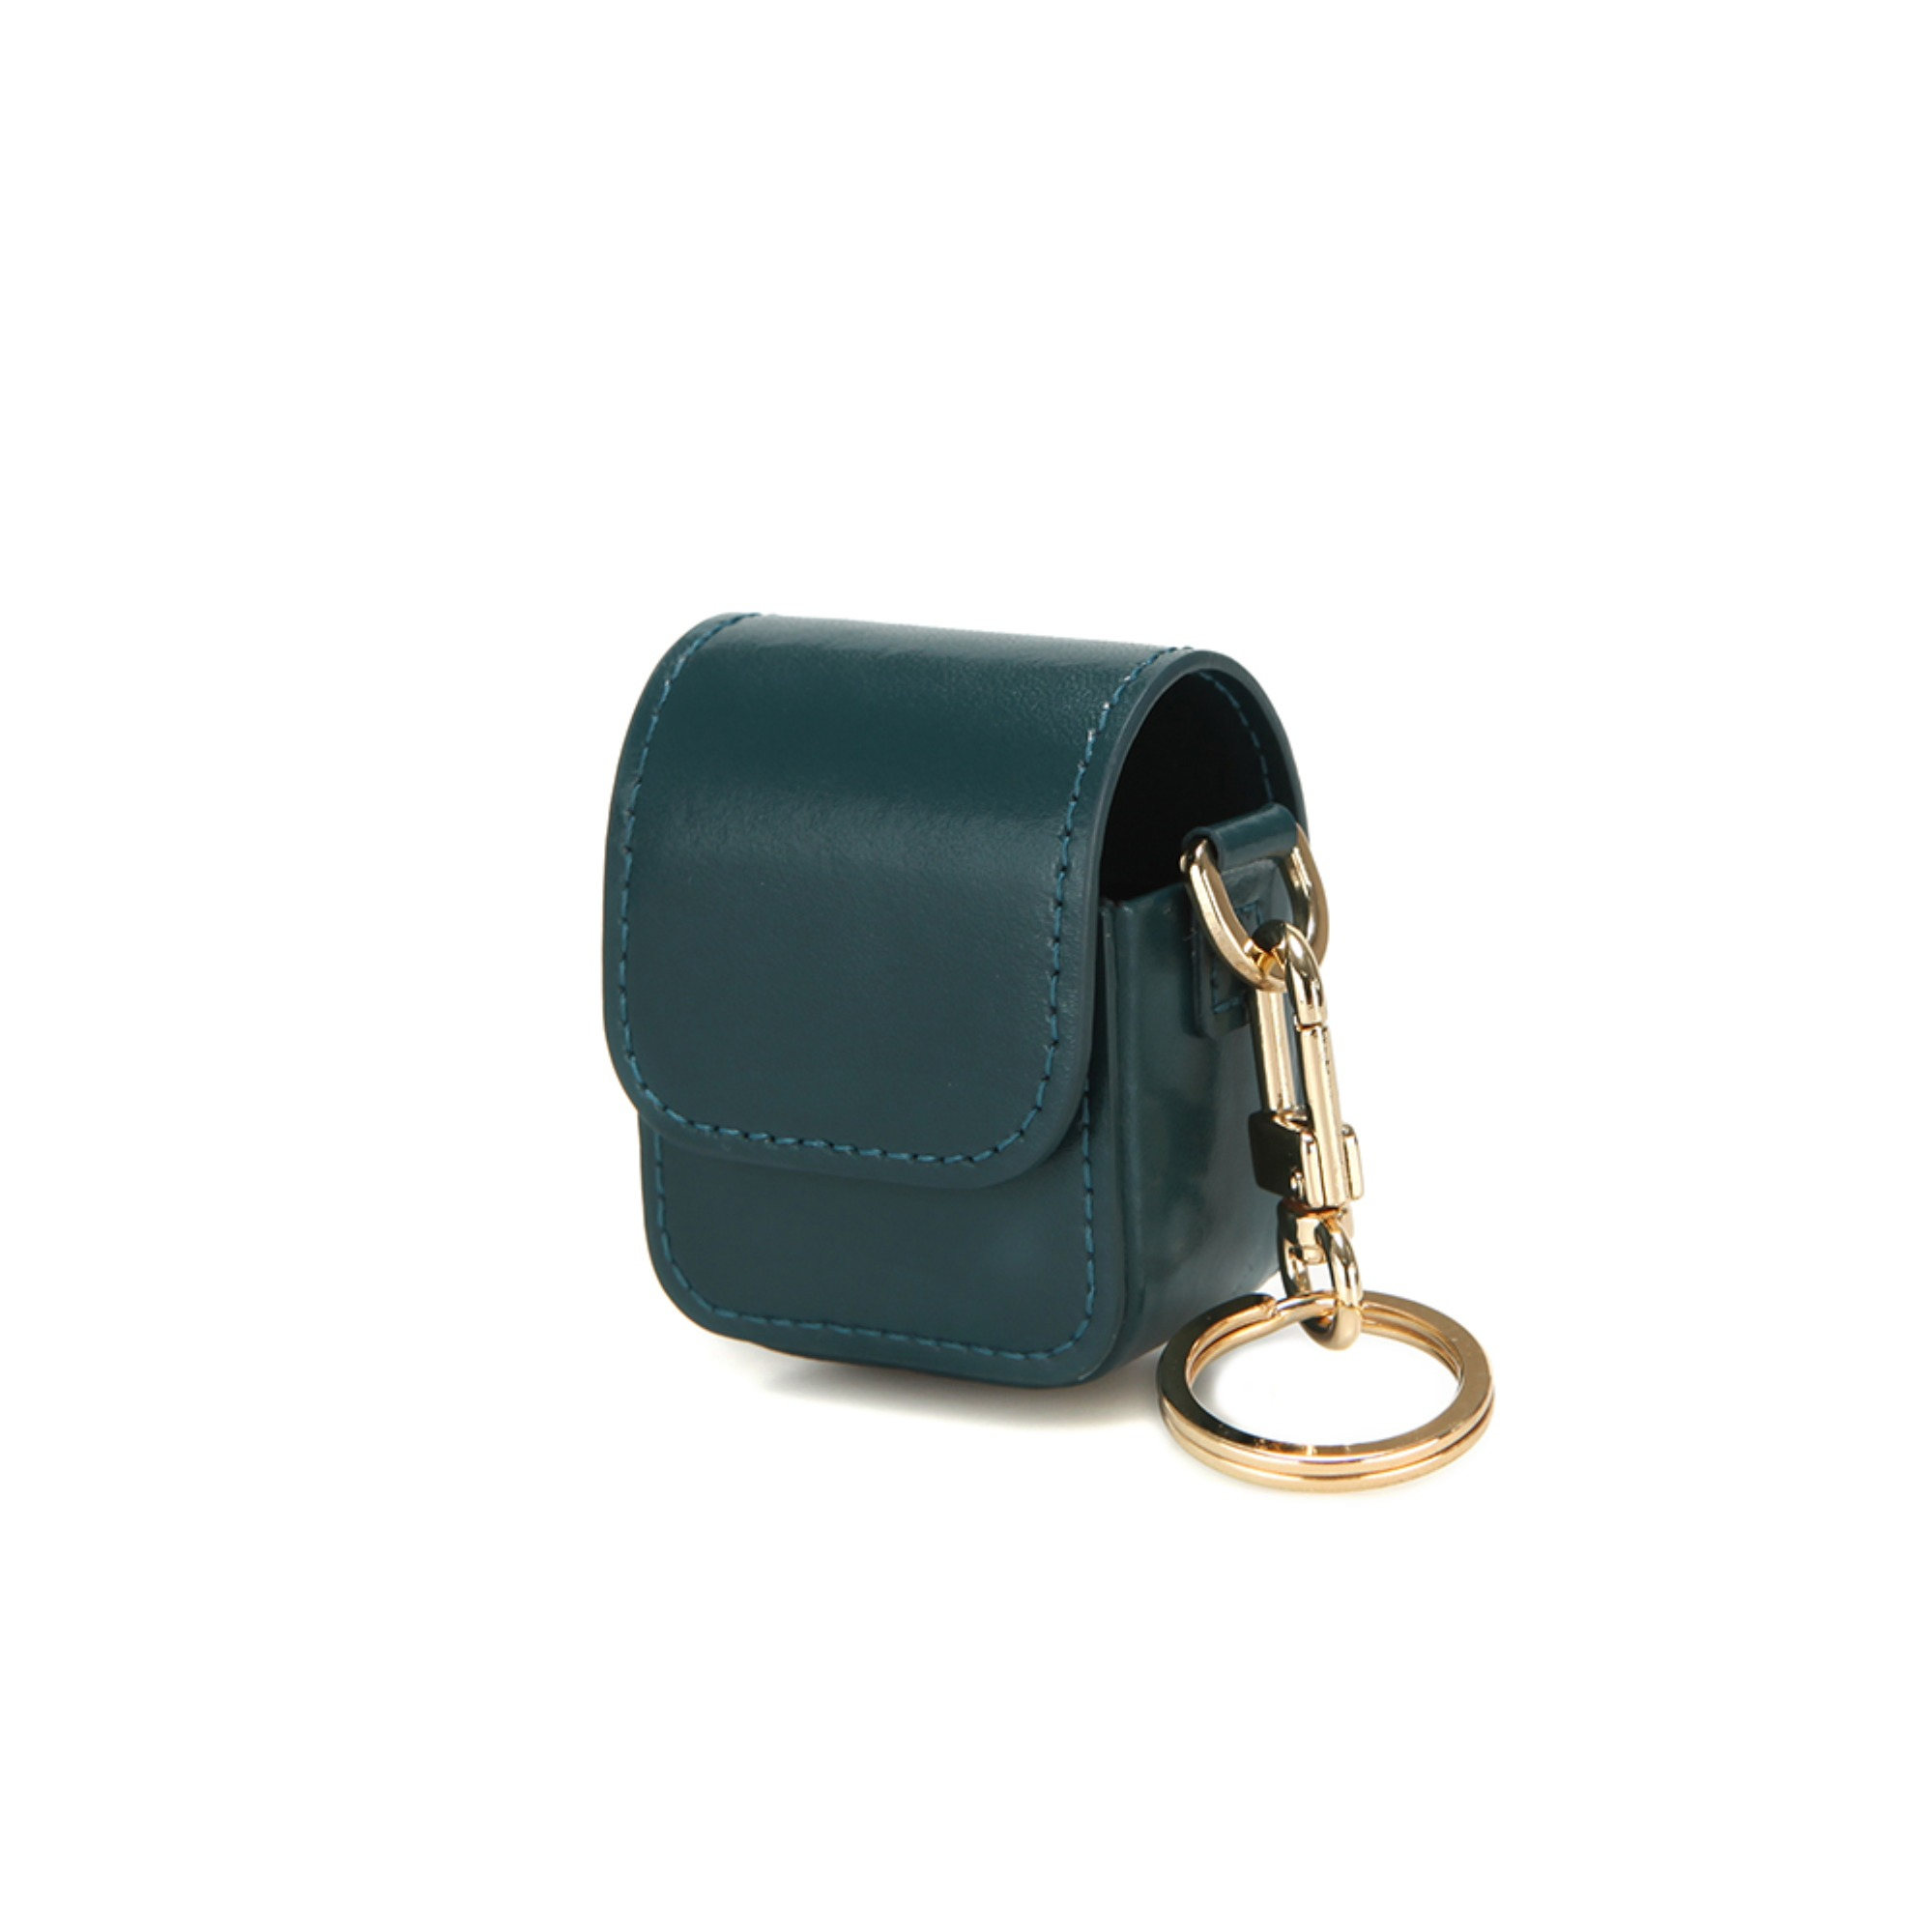 LEATHER AIRPODS CASE - MOSS GREEN